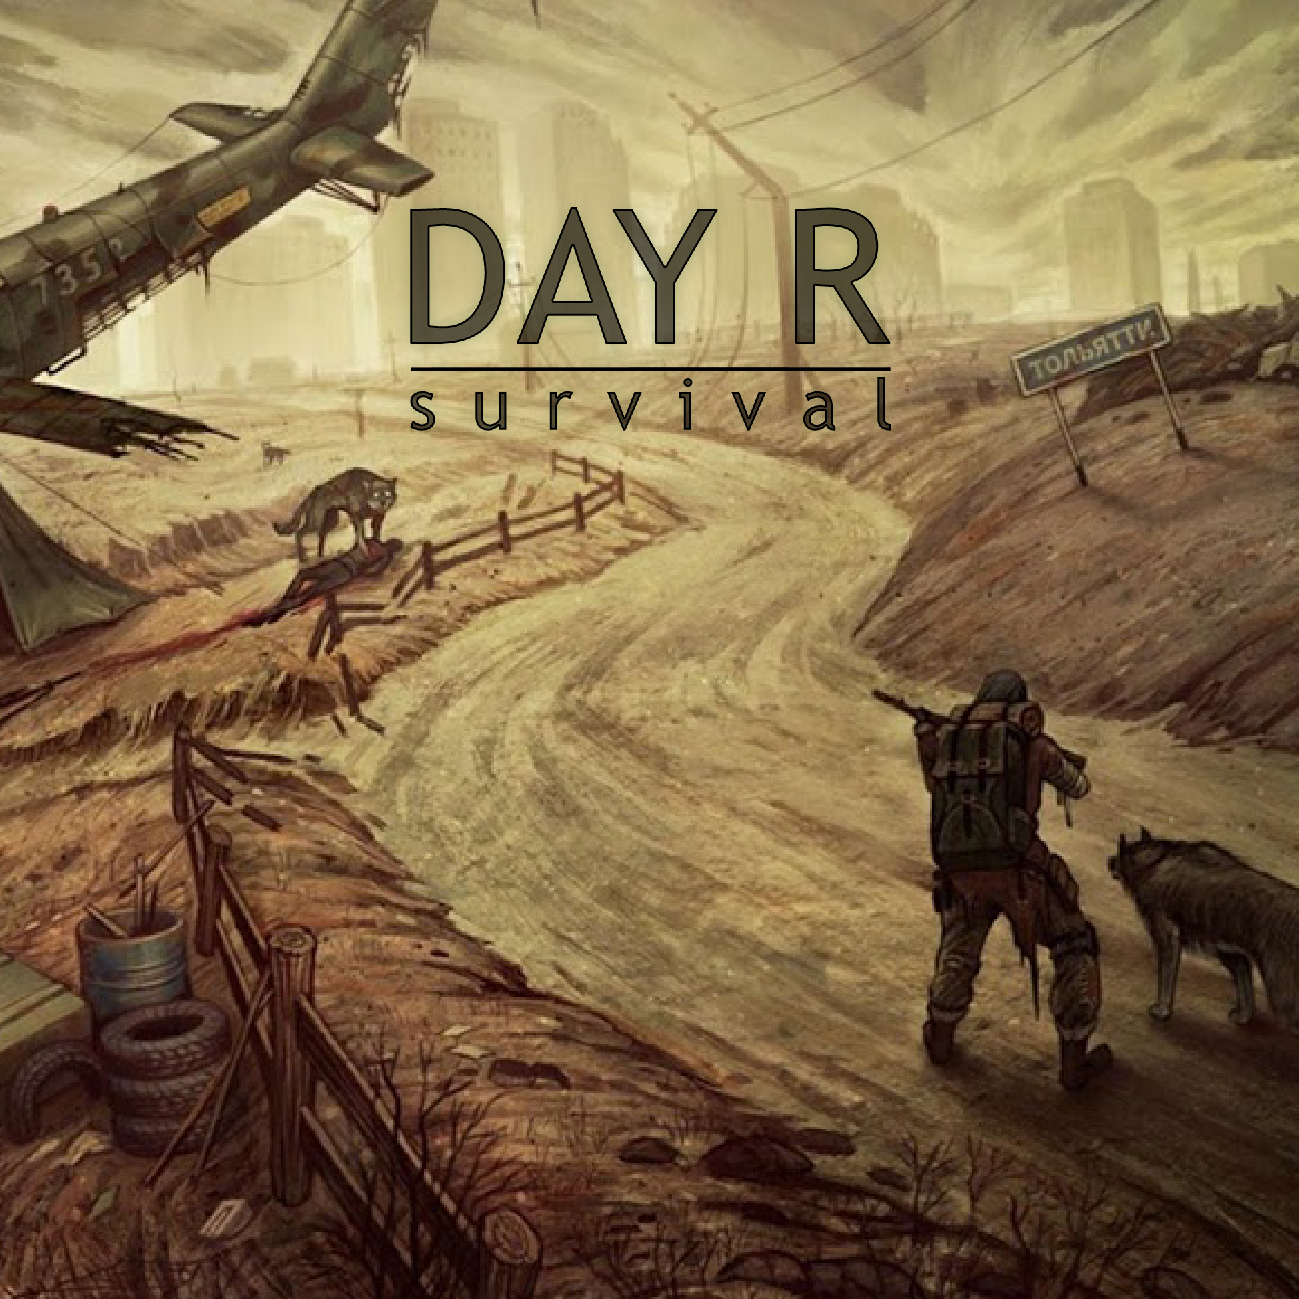 Game localization of Day R developed by tltGames